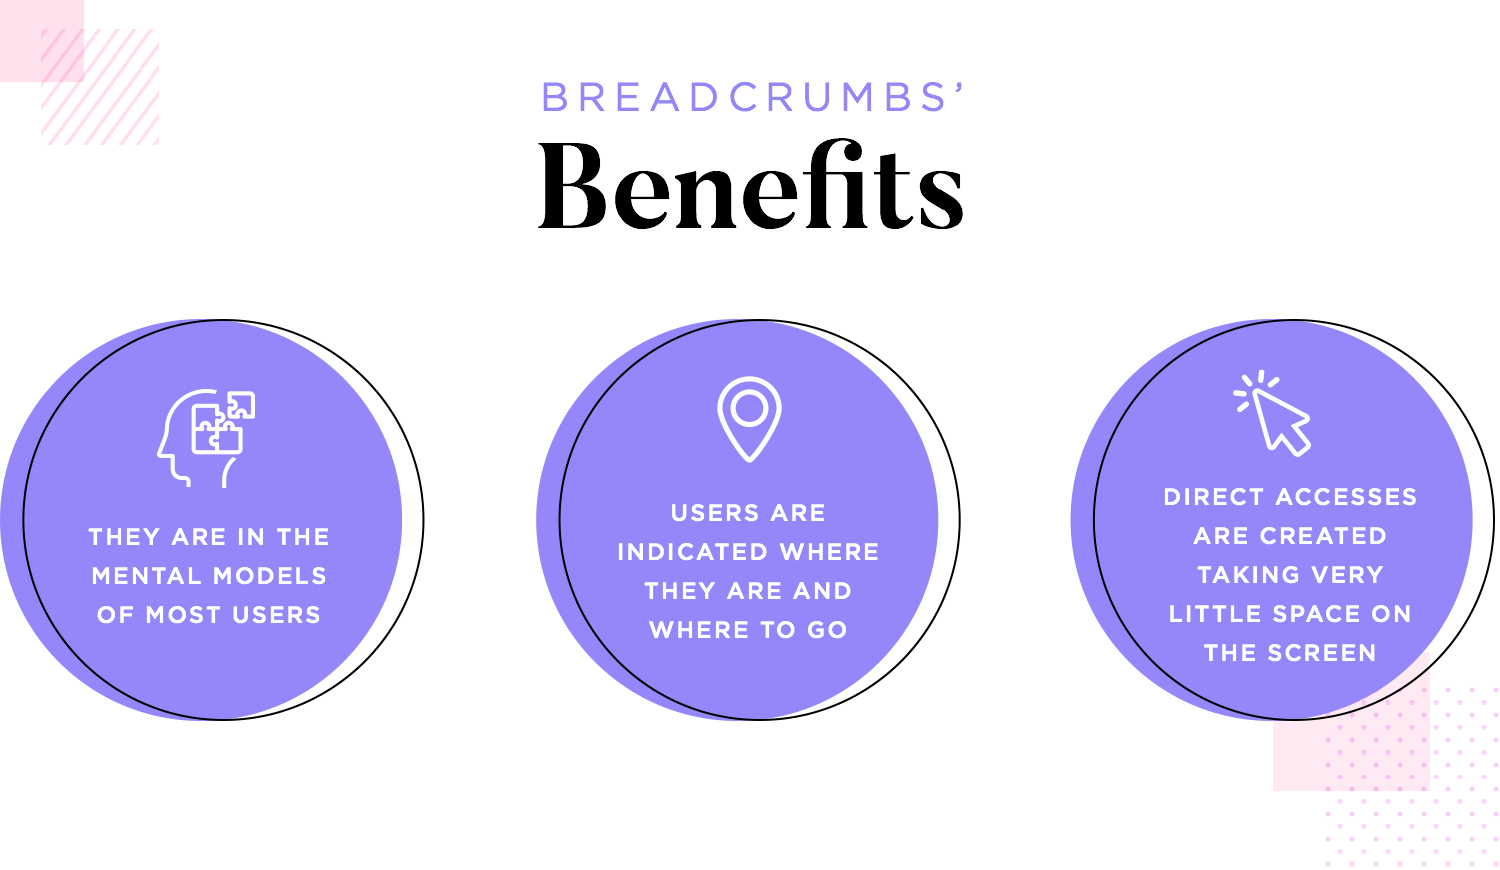 breadcrumbs as way to get users to navigate with less clicks